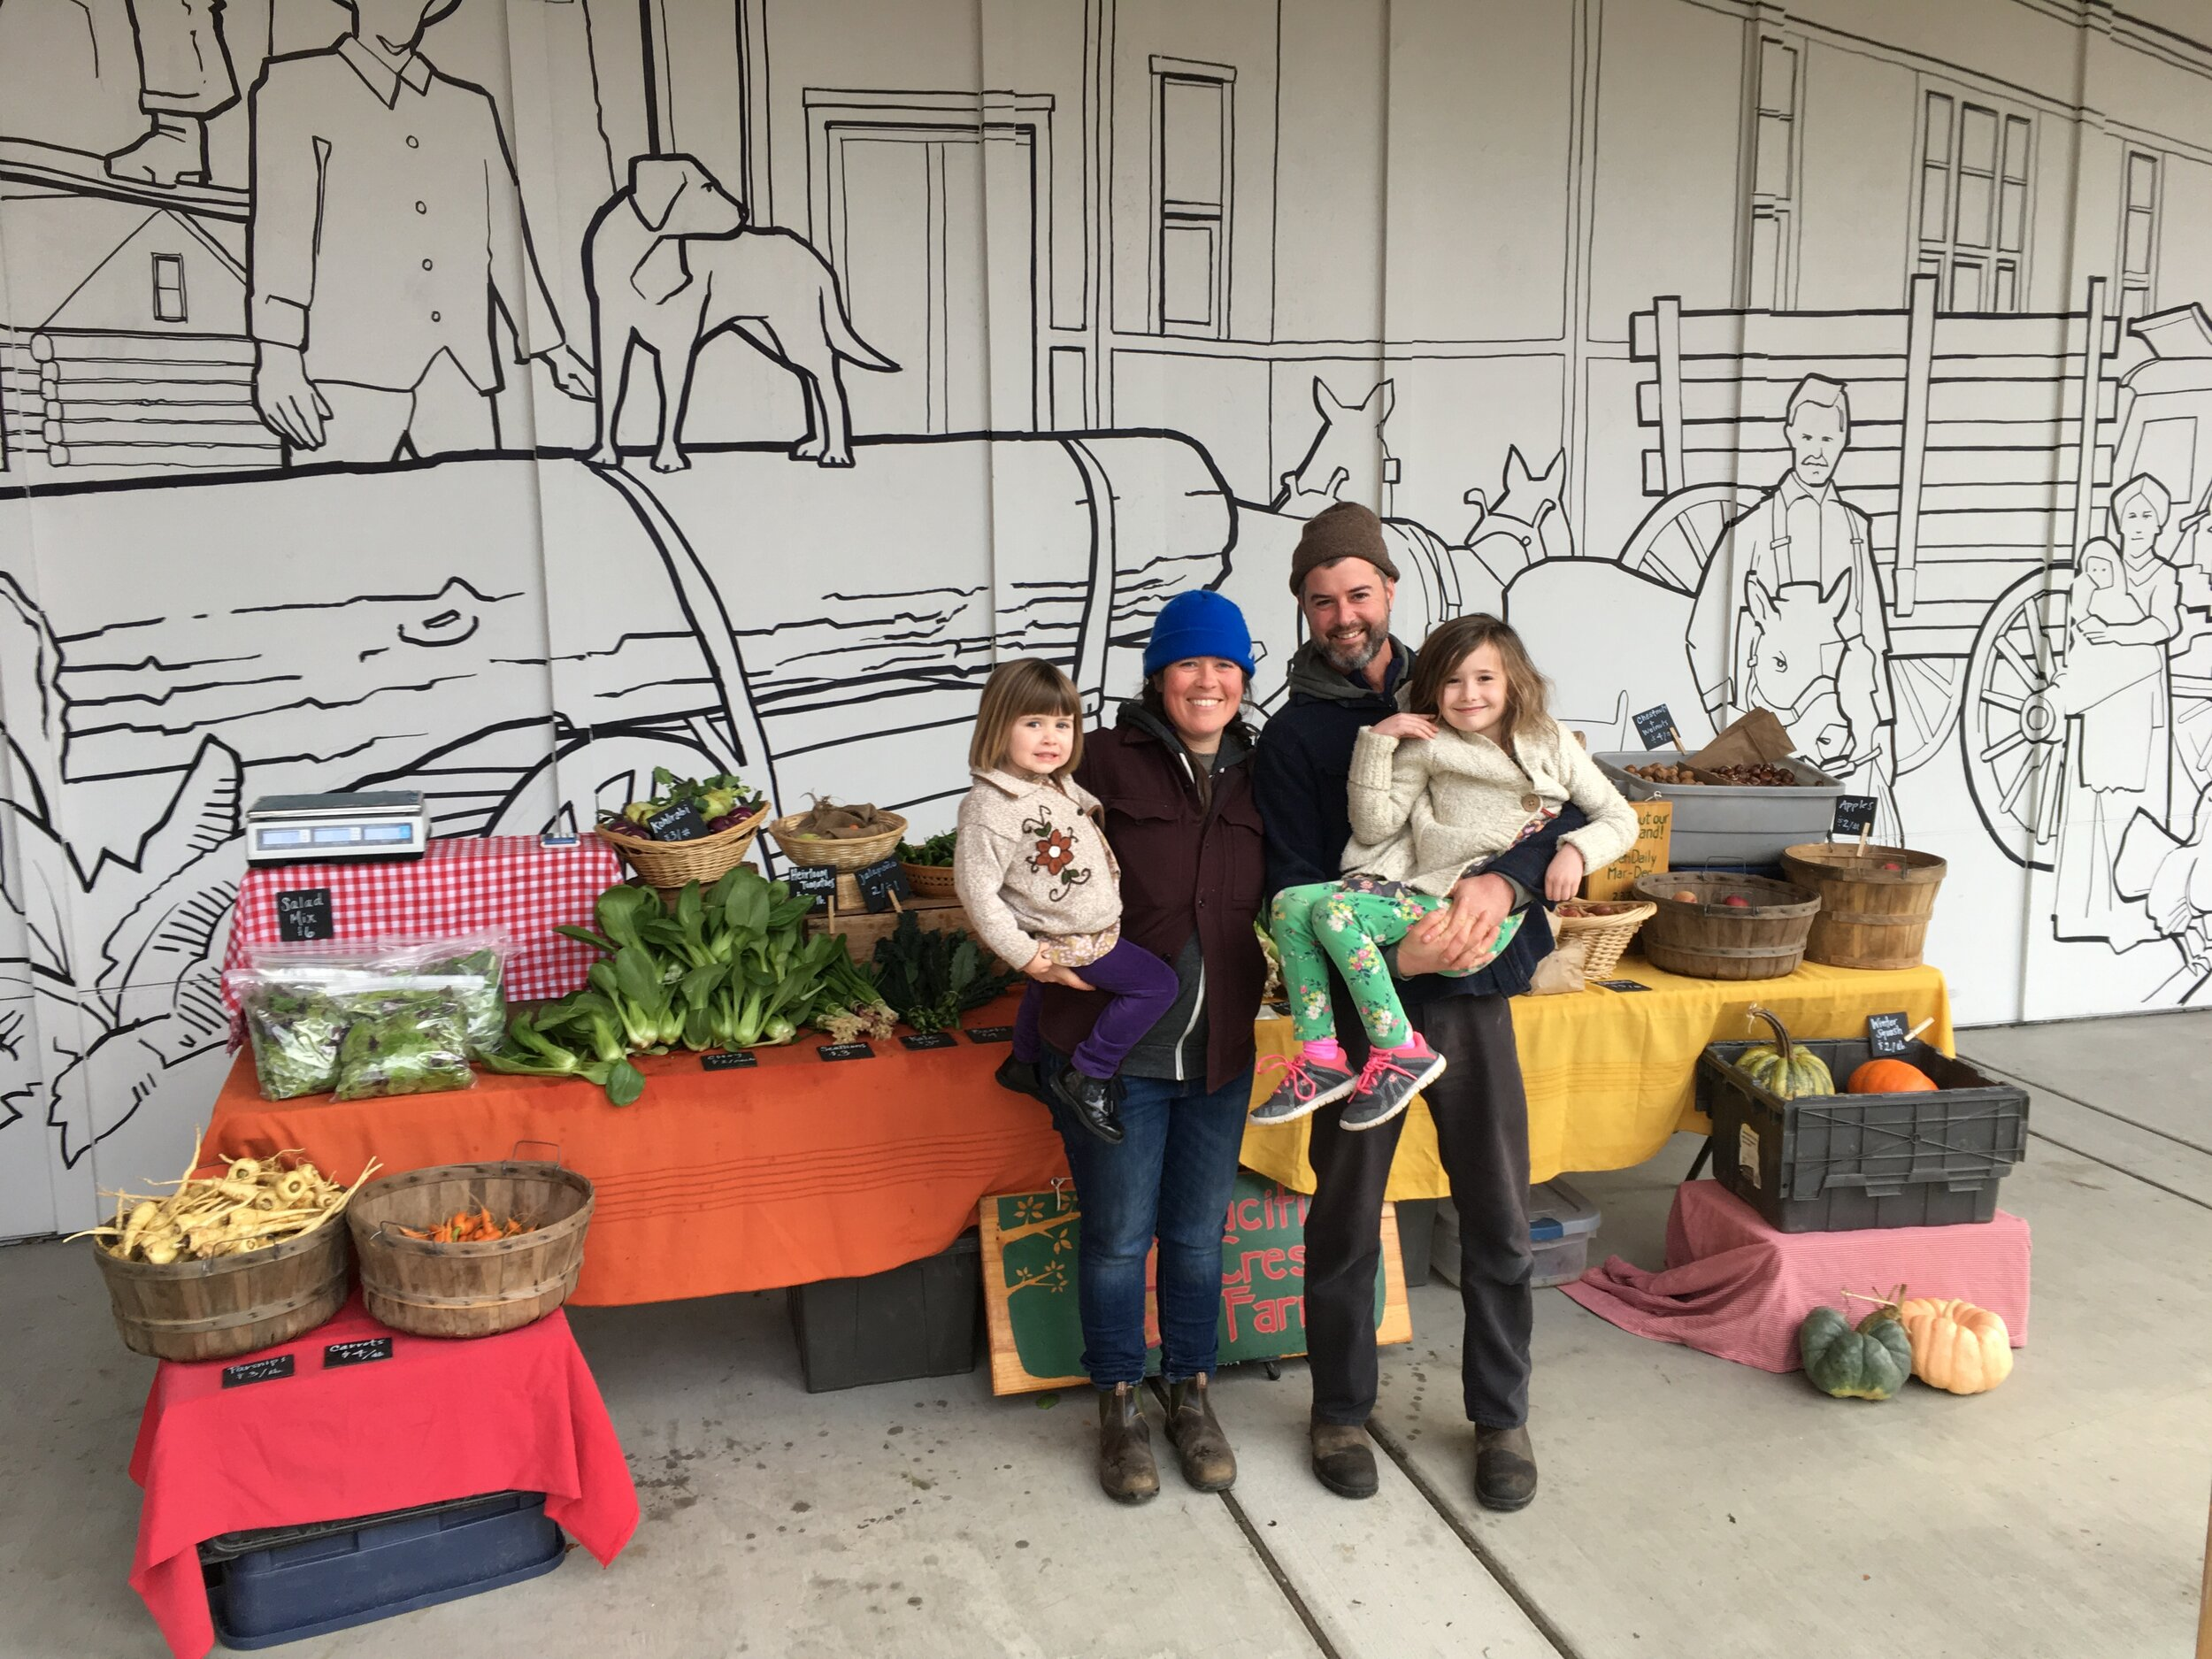 VIGA - Our mission: To promote farming, access to healthy food, and a sustainable agricultural economy on Vashon Island through education, advocacy, and a vibrant farmers market.